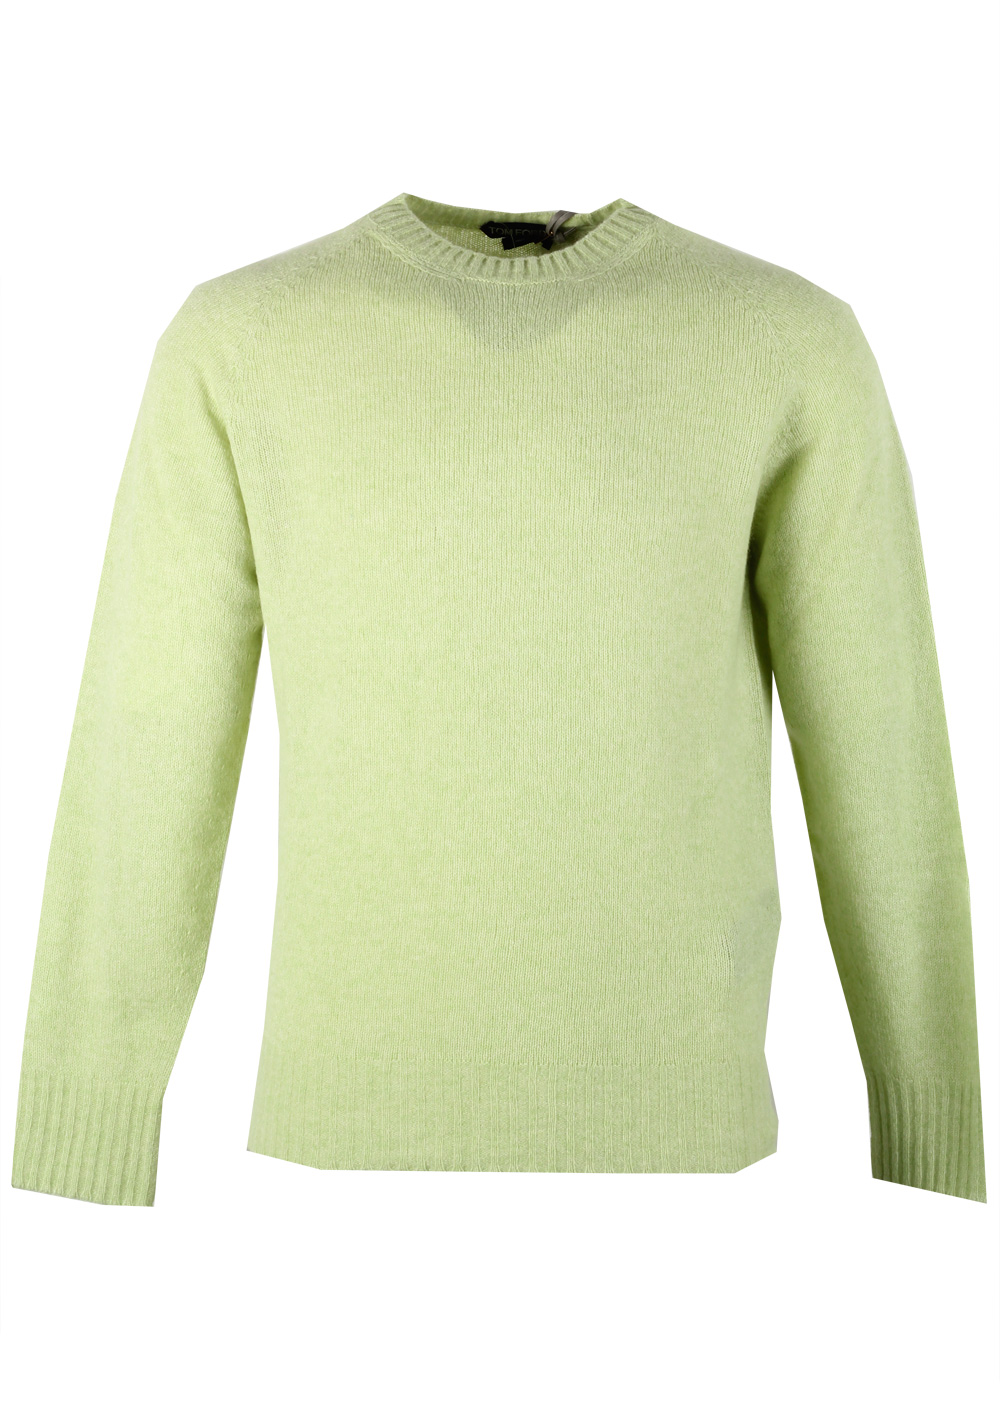 TOM FORD Green Crew Neck Sweater Size 48 / 38R U.S. In Cashmere Blend | Costume Limité